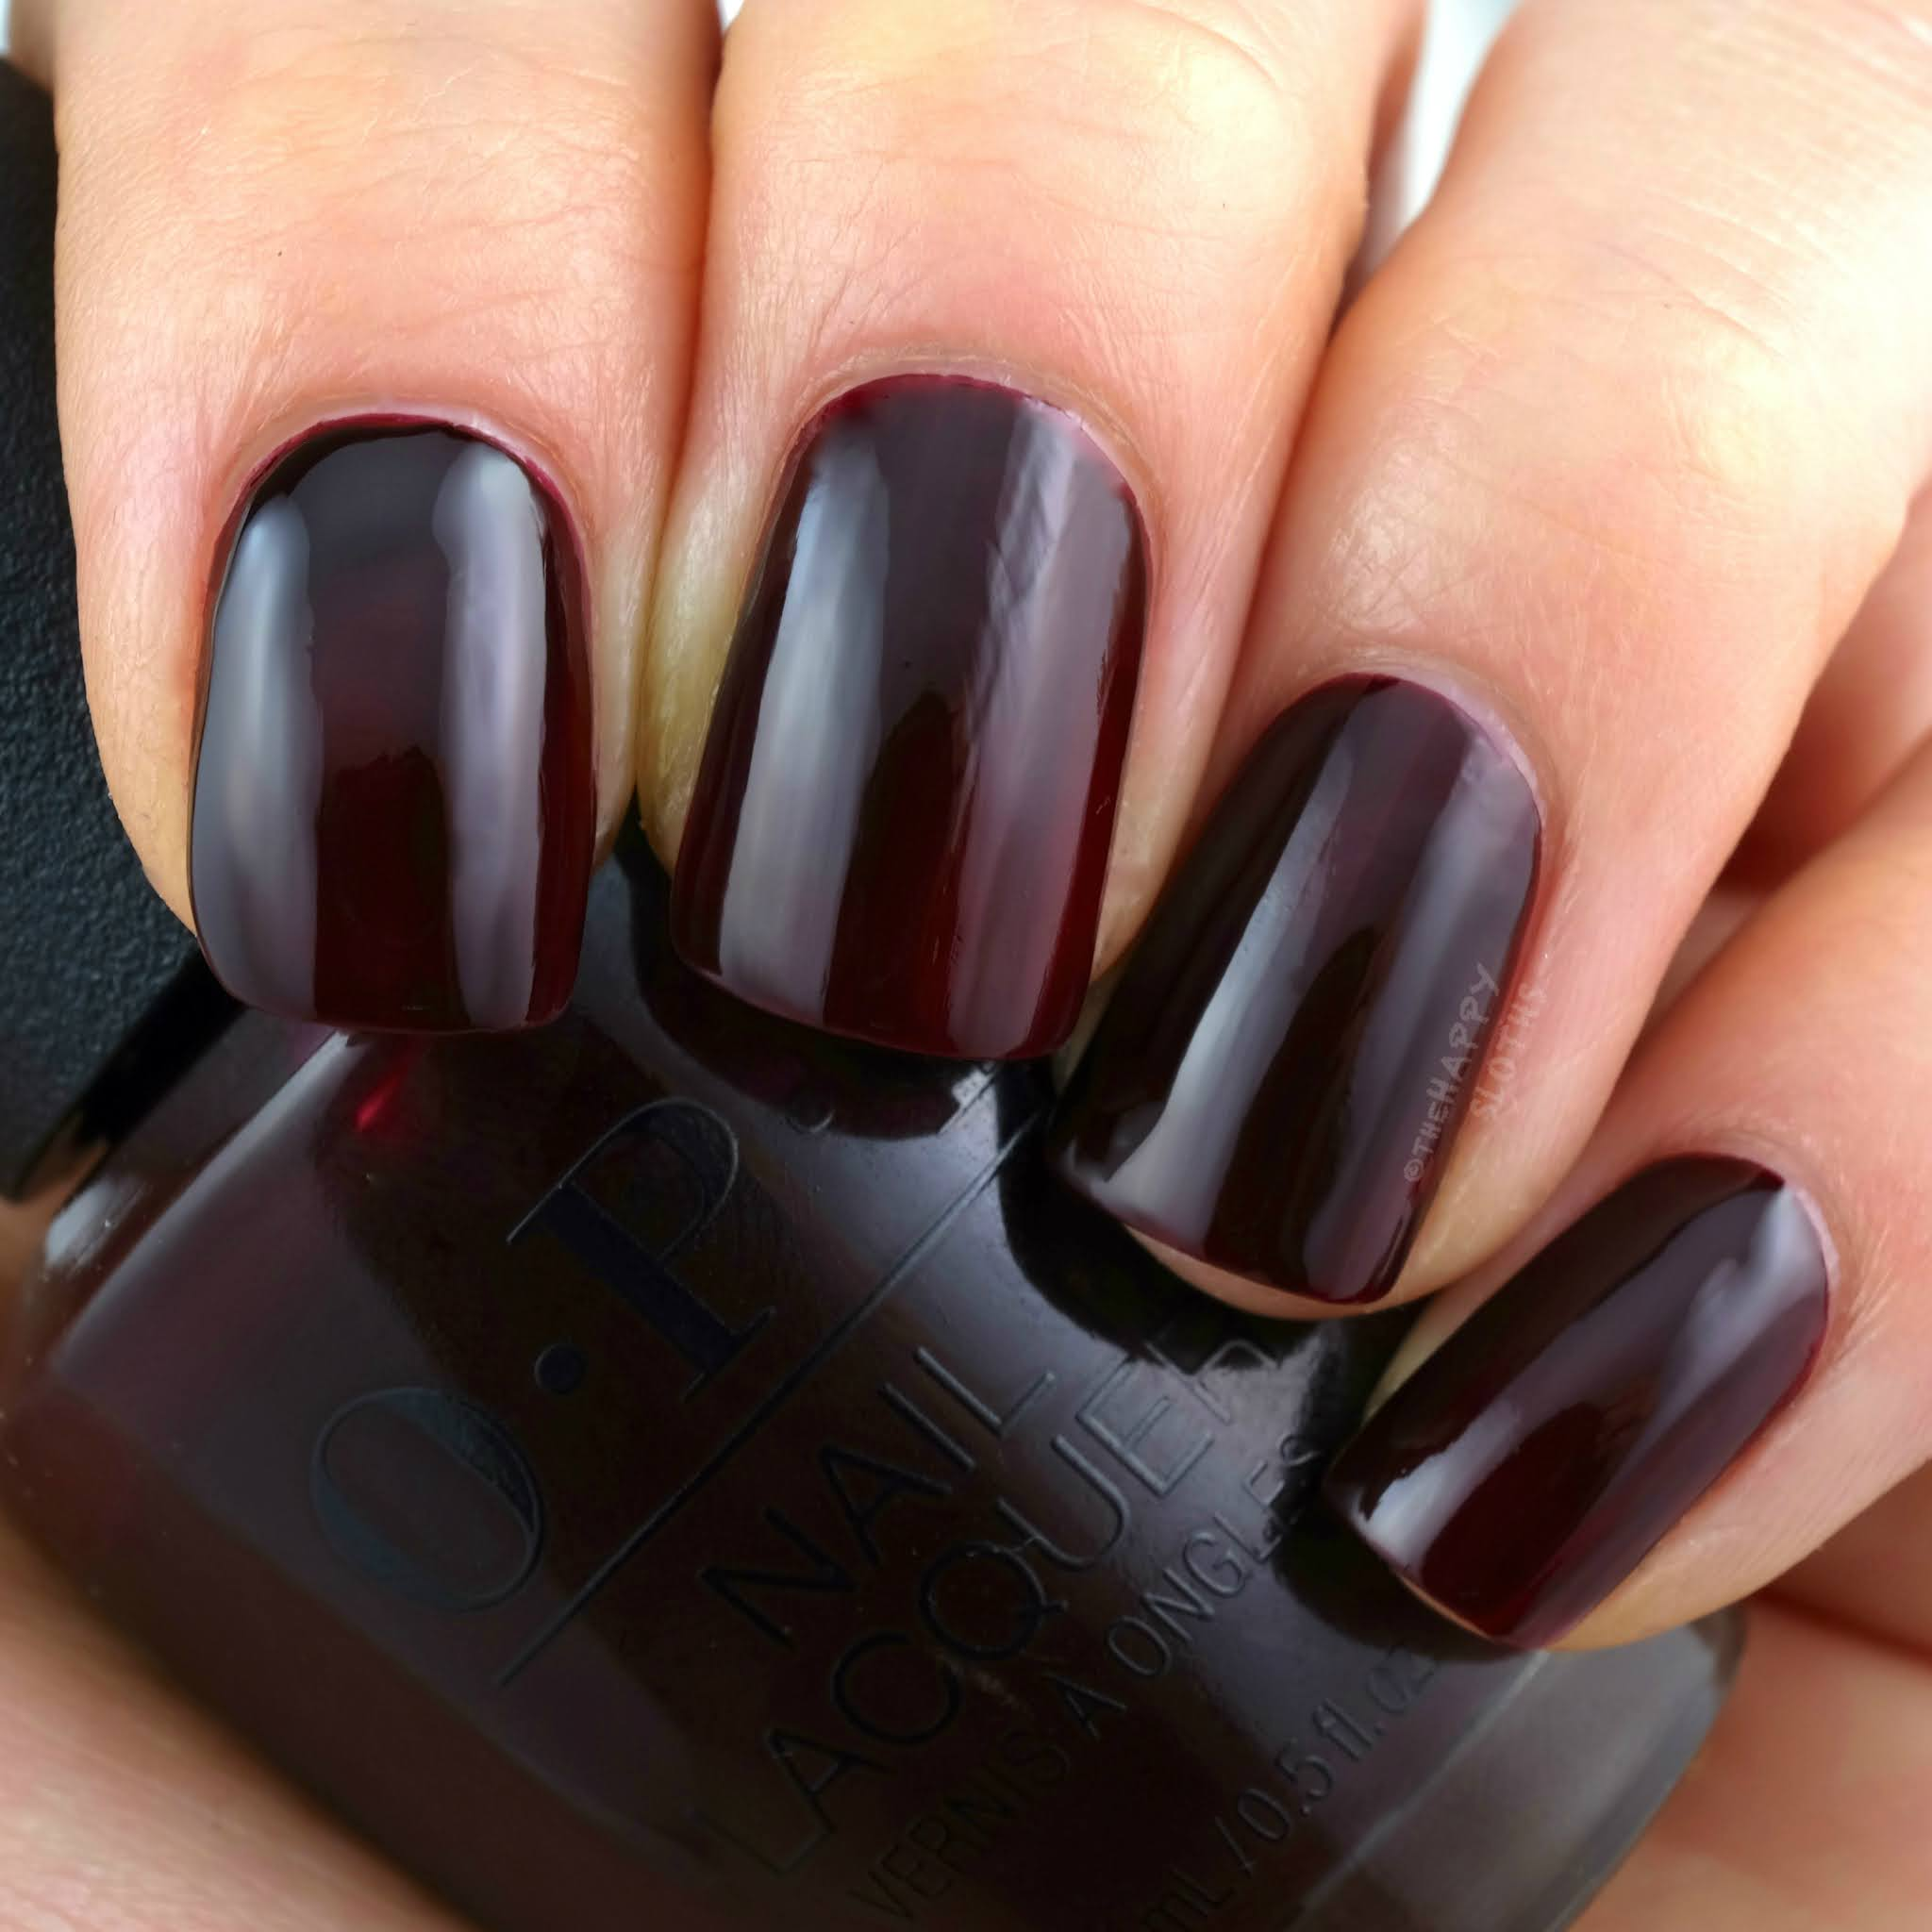 OPI Fall 2020 | Complimentary Wine: Review and Swatches